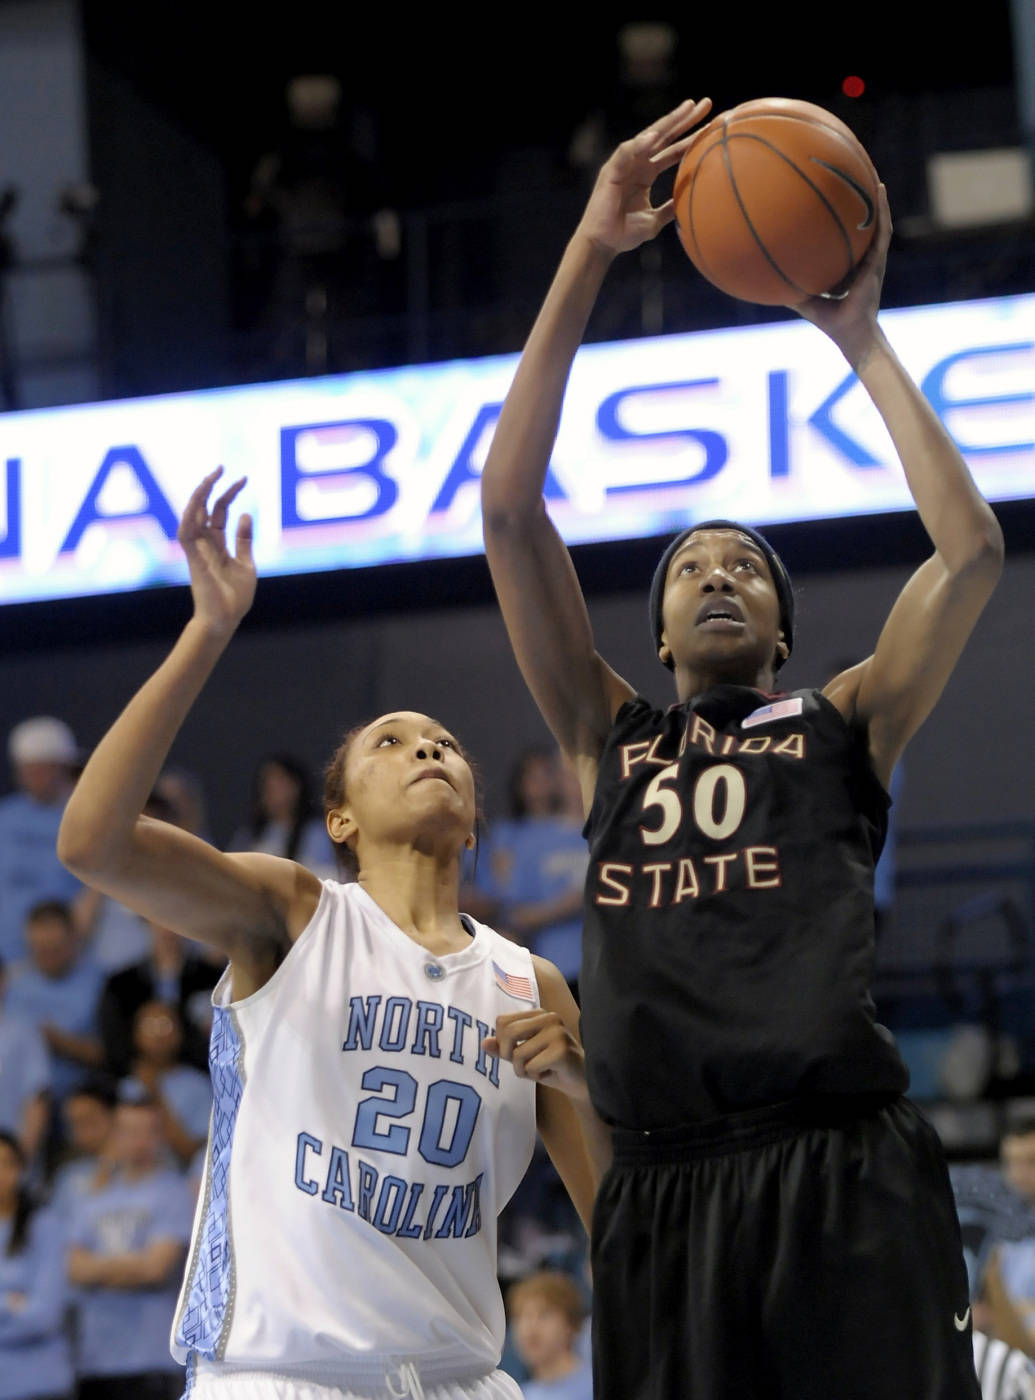 Florida State's Jacinta Monroe (50) shoots over North Carolina's Chay Shegog (20) during the second half an NCAA college basketball game in Durham, N.C., Monday, Feb. 1, 2010. Monroe led her team with 16 points for a 83-73 win over North Carolina. (AP Photo/Sara D. Davis)